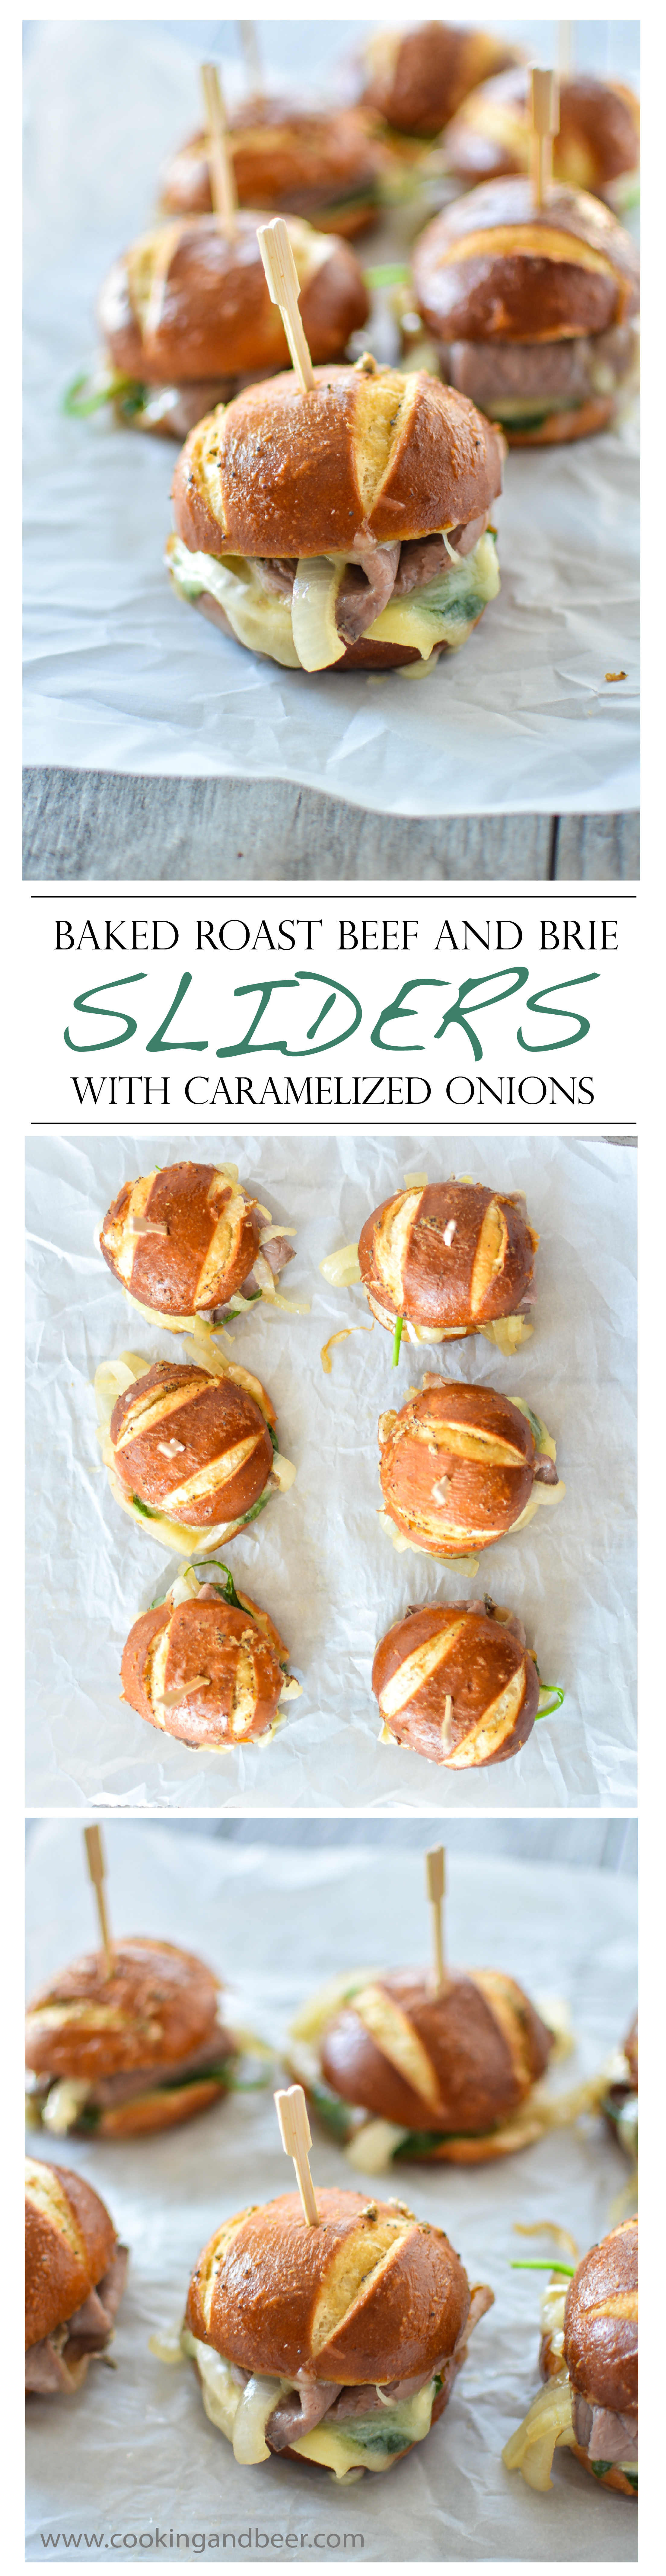 Roast Beef and Brie Sliders